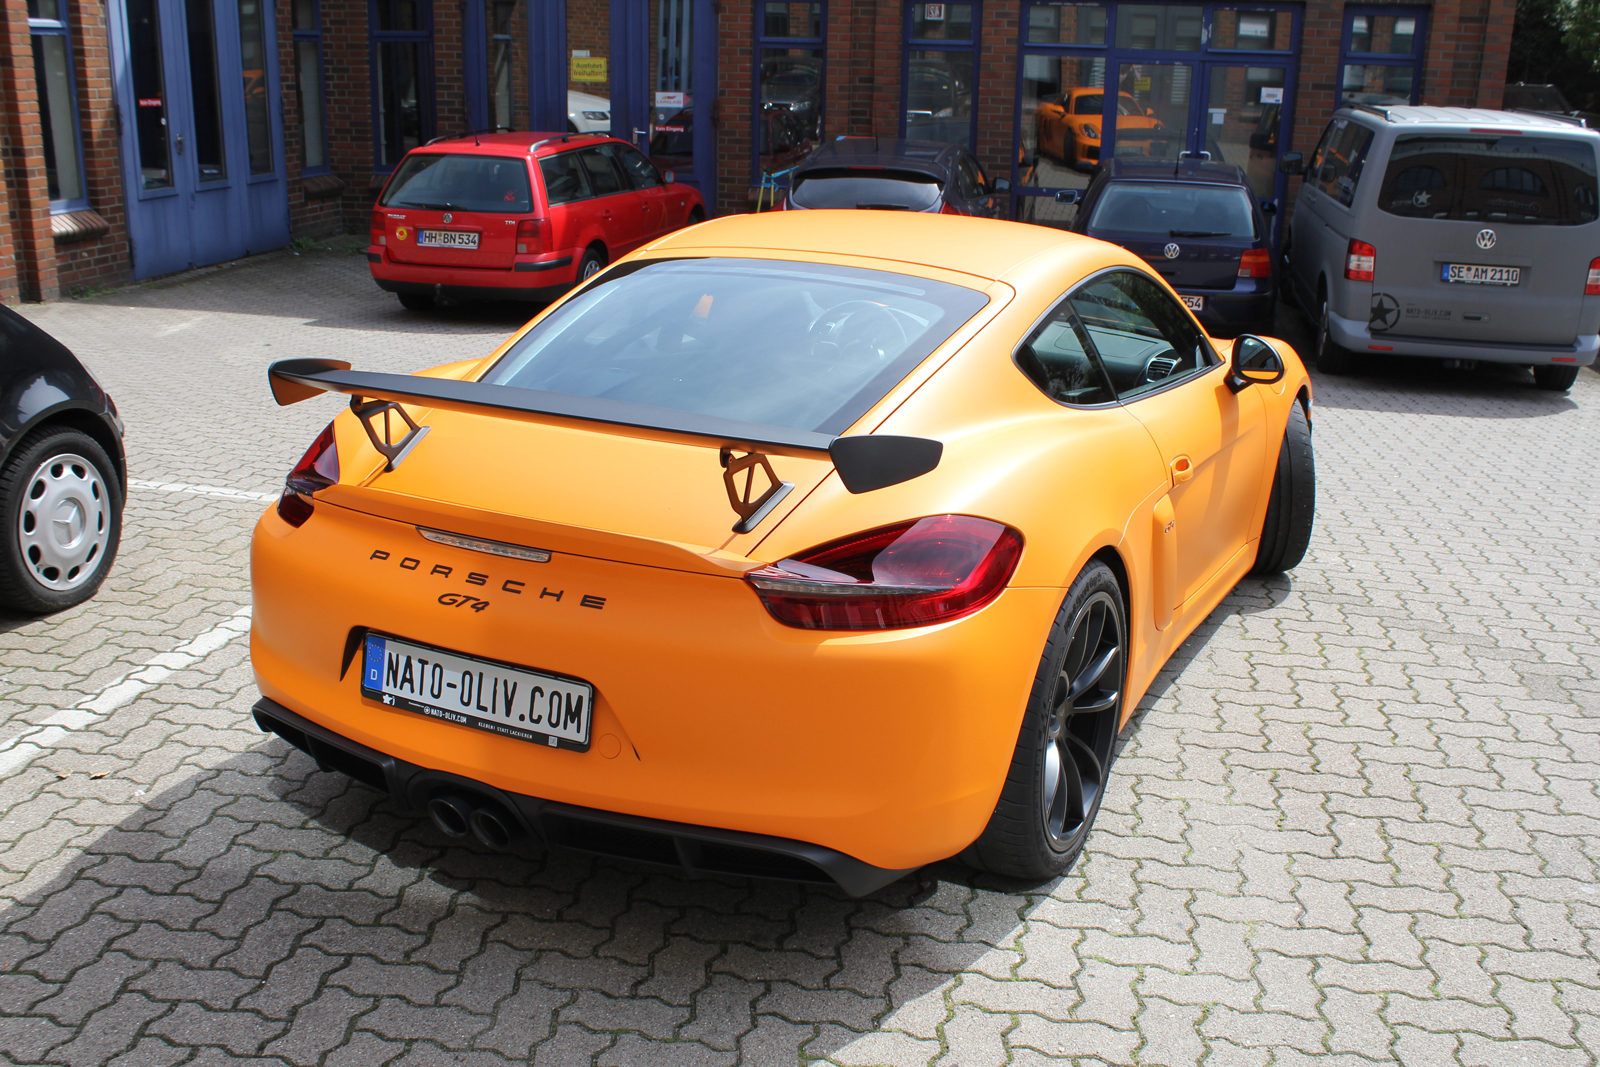 PORSCHE_CYAMAN_GT4_FOLIERUNG_ORANGE_MATT_02